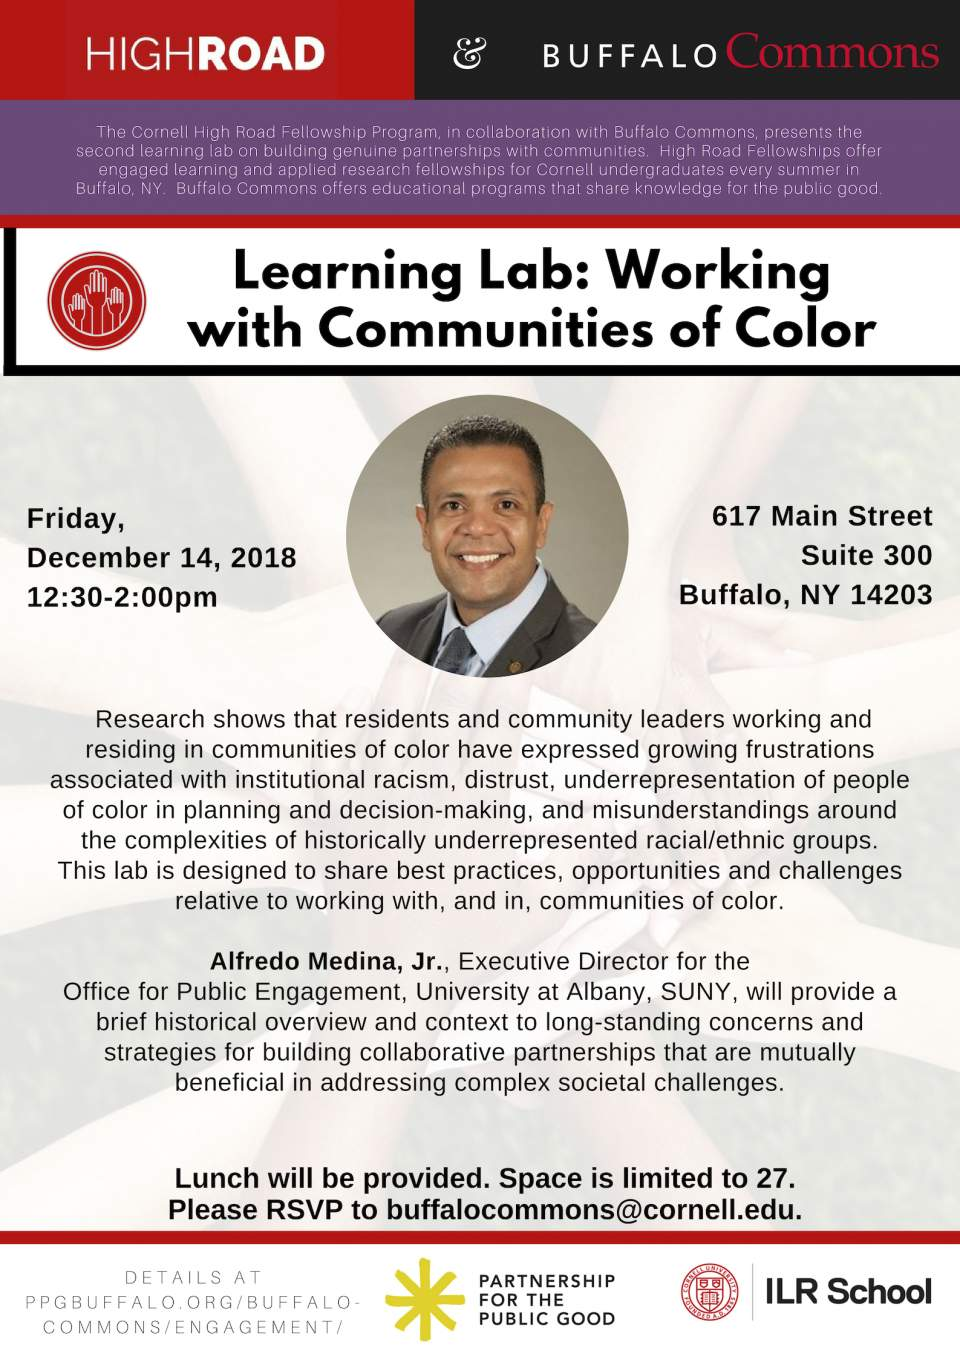 Learning Lab: Working with Communities of Color